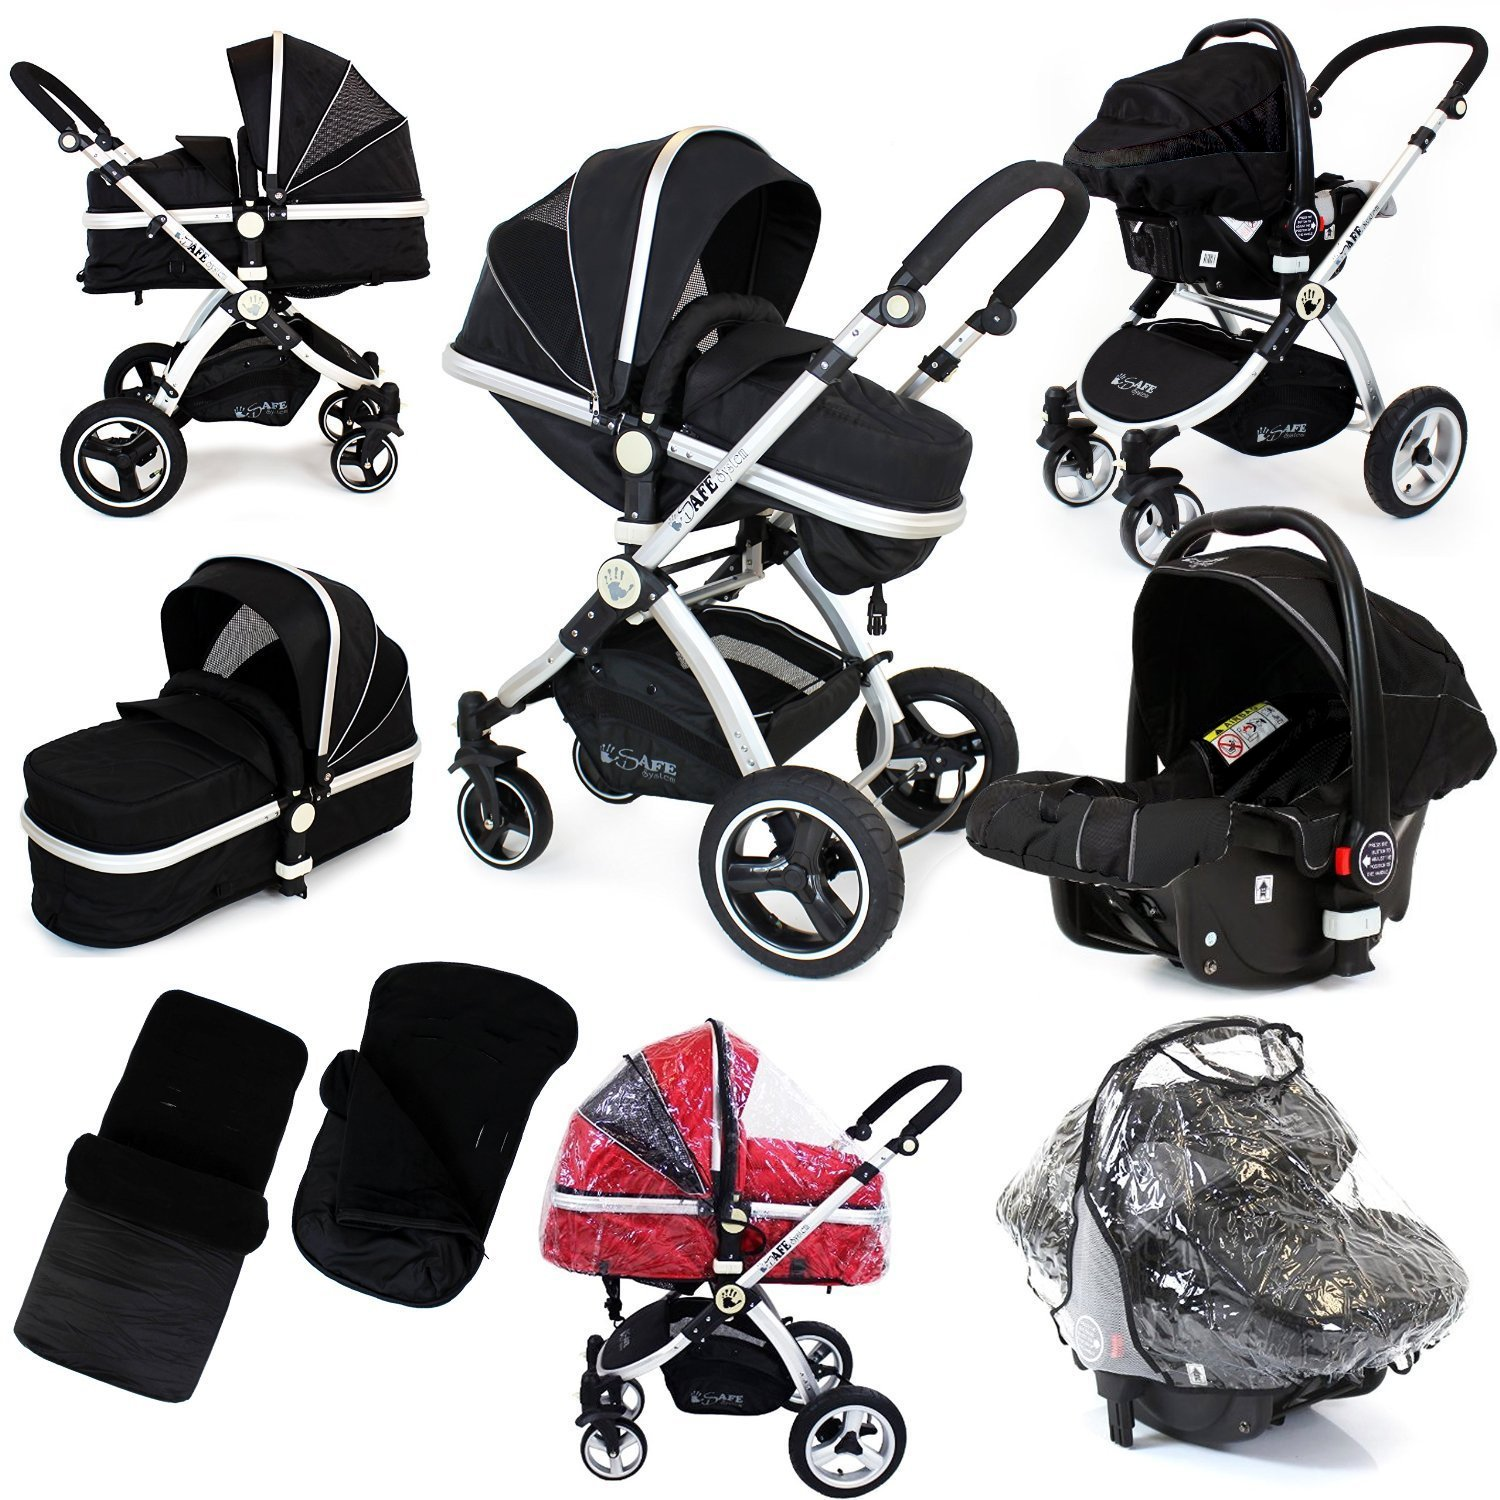 Black Grey Travel System Pram & Luxury Stroller 3 in 1